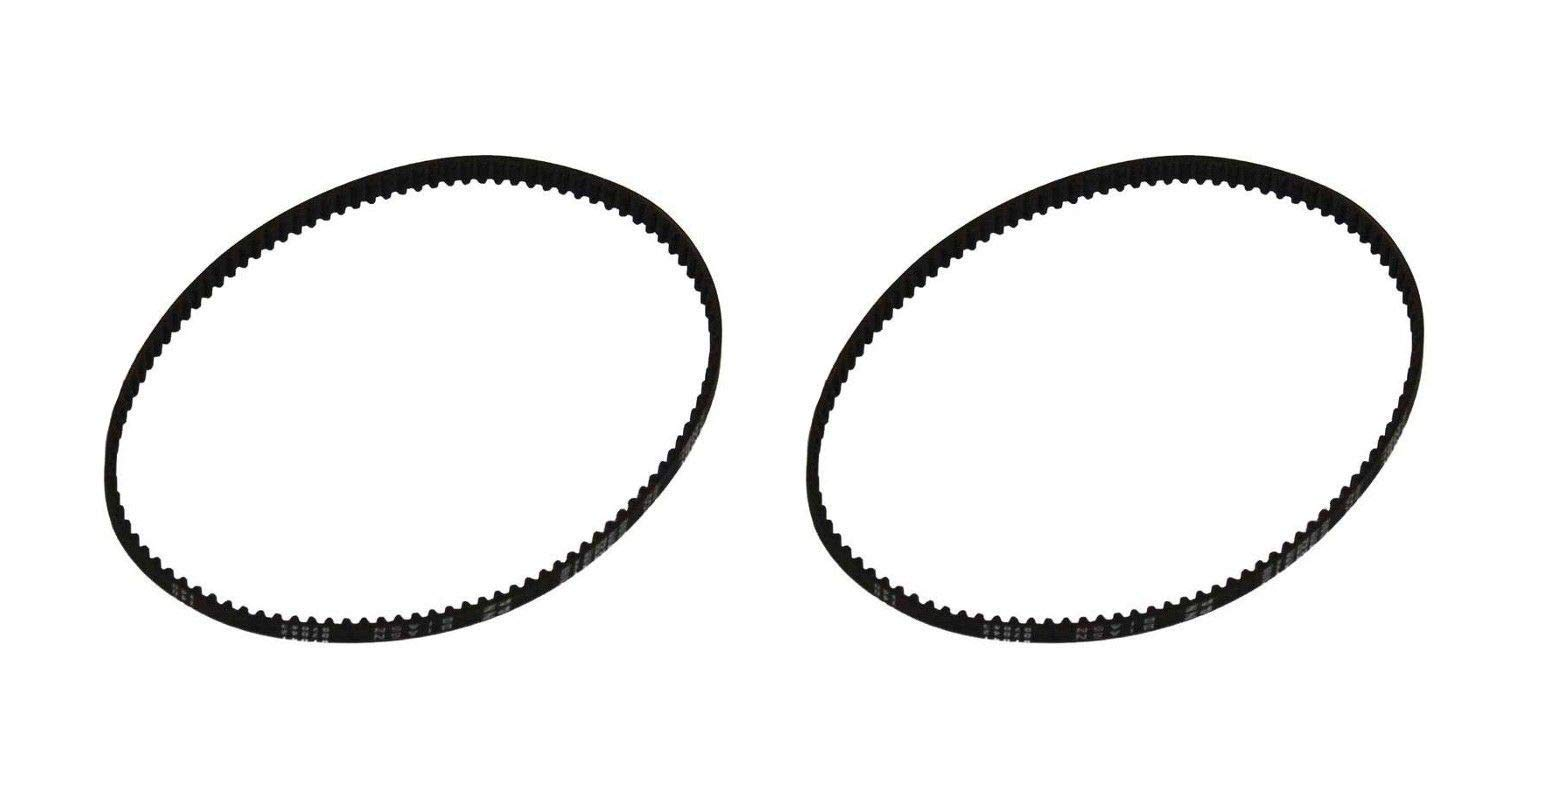 REPLACEMENT BELT for TurboCat Zoom - 2pk, FITS ALL ZOOM, EX & PRO by Live Shop